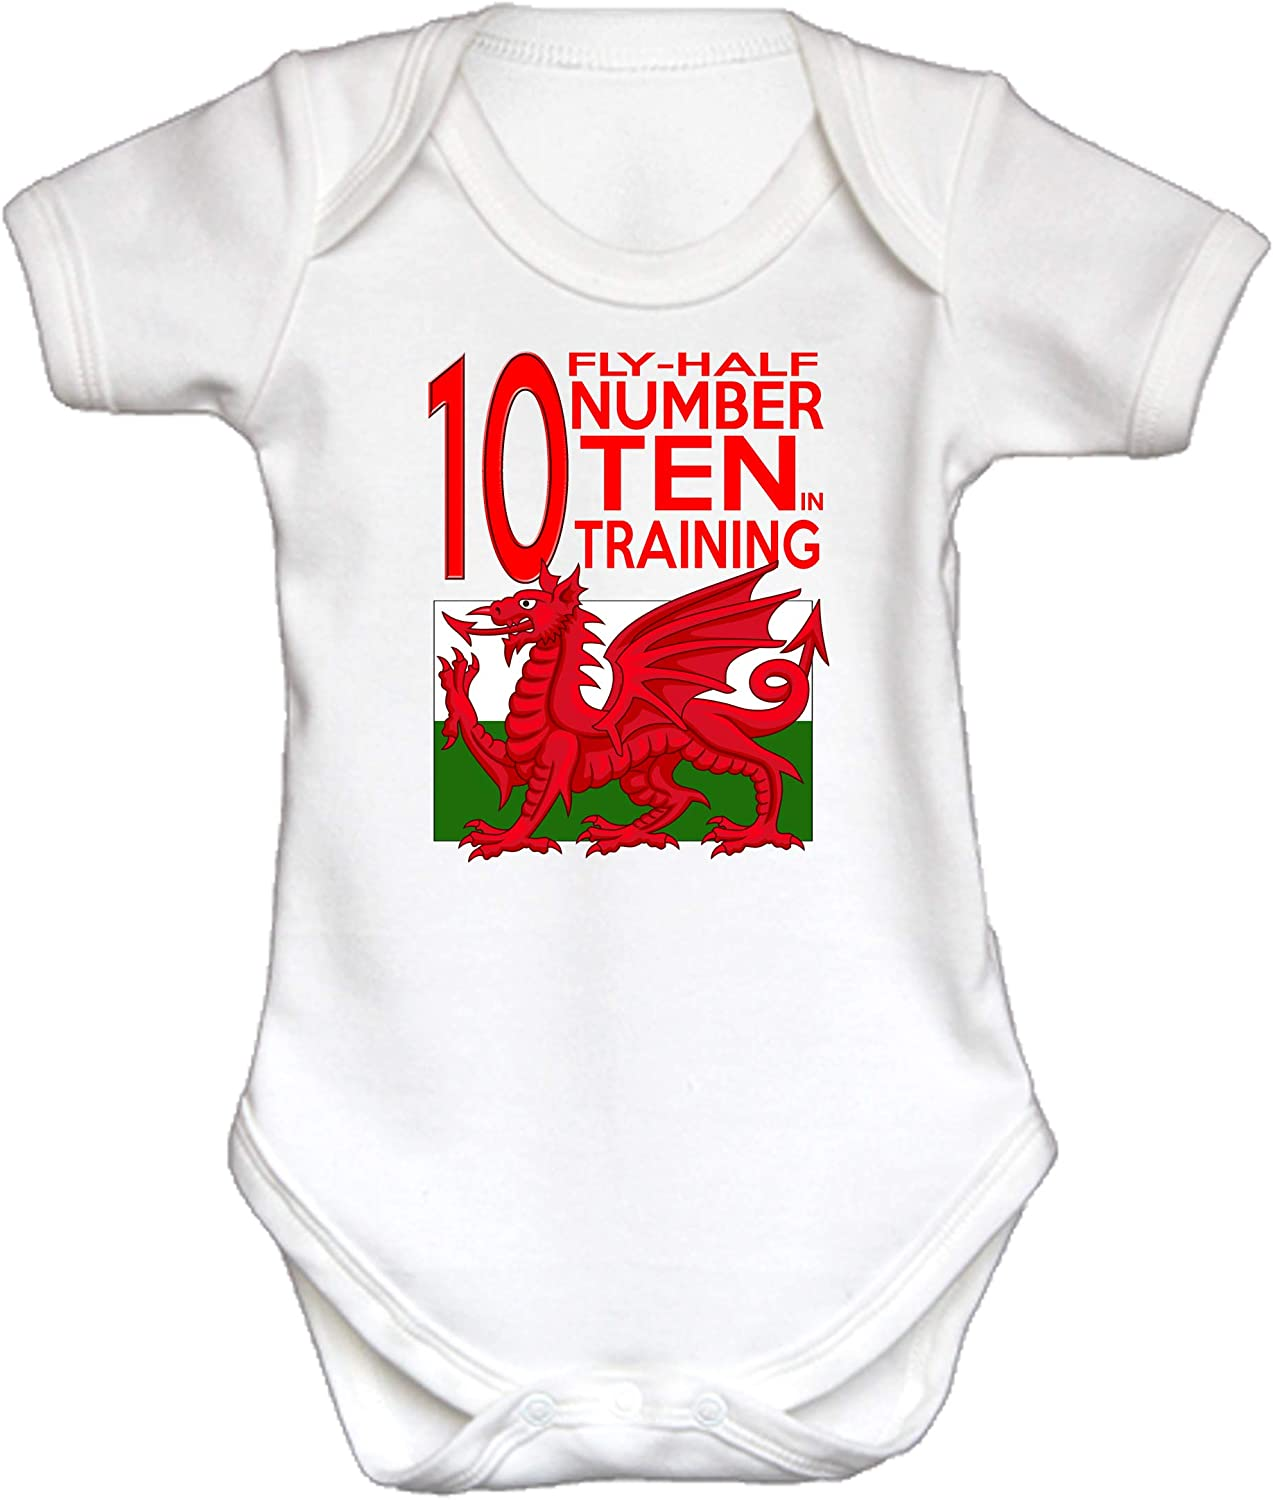 Gift Baby Grow Sleep Suit One Piece Short Sleeve. KAZMUGZ Welsh Rugby White Baby Grow Number 10 Fly Half in Training